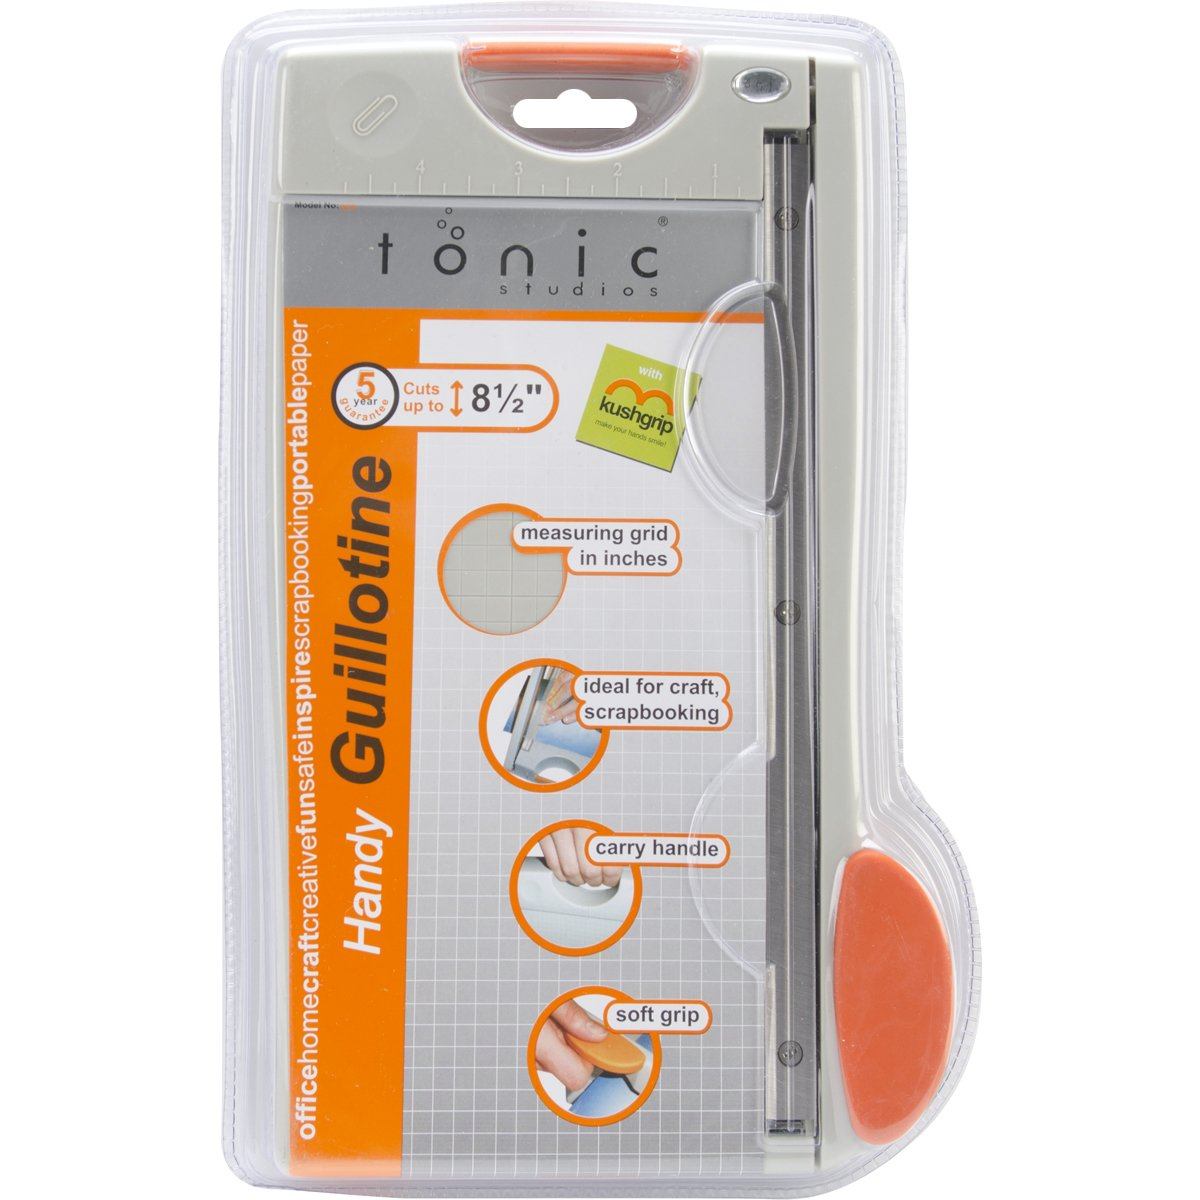 Brand New Tonic Guillotine Paper Trimmer 8.5''''- Brand New